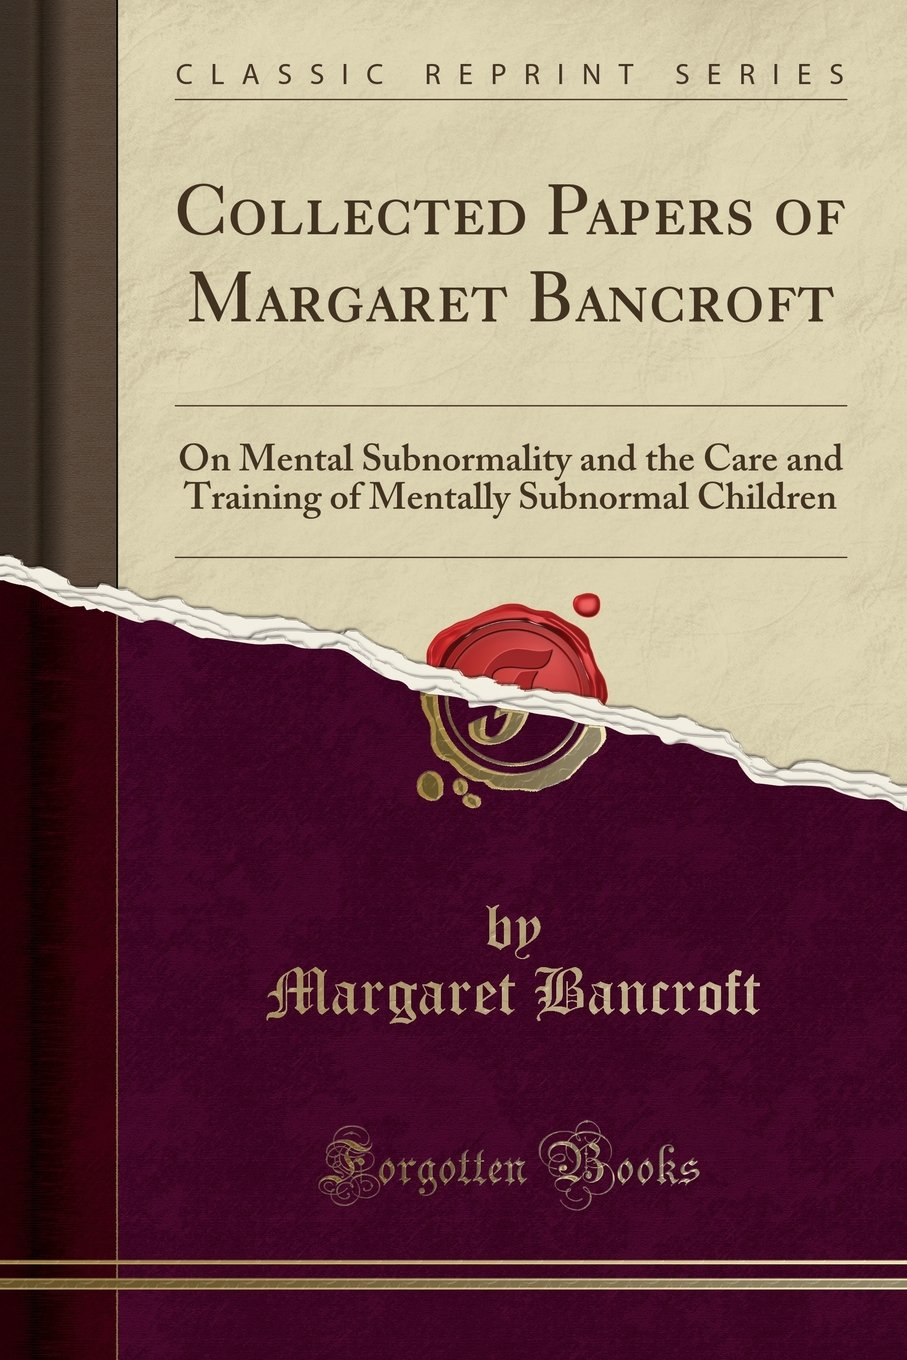 Collected Papers of Margaret Bancroft: On Mental Subnormality and the Care and Training of Mentally Subnormal Children (Classic Reprint) ebook